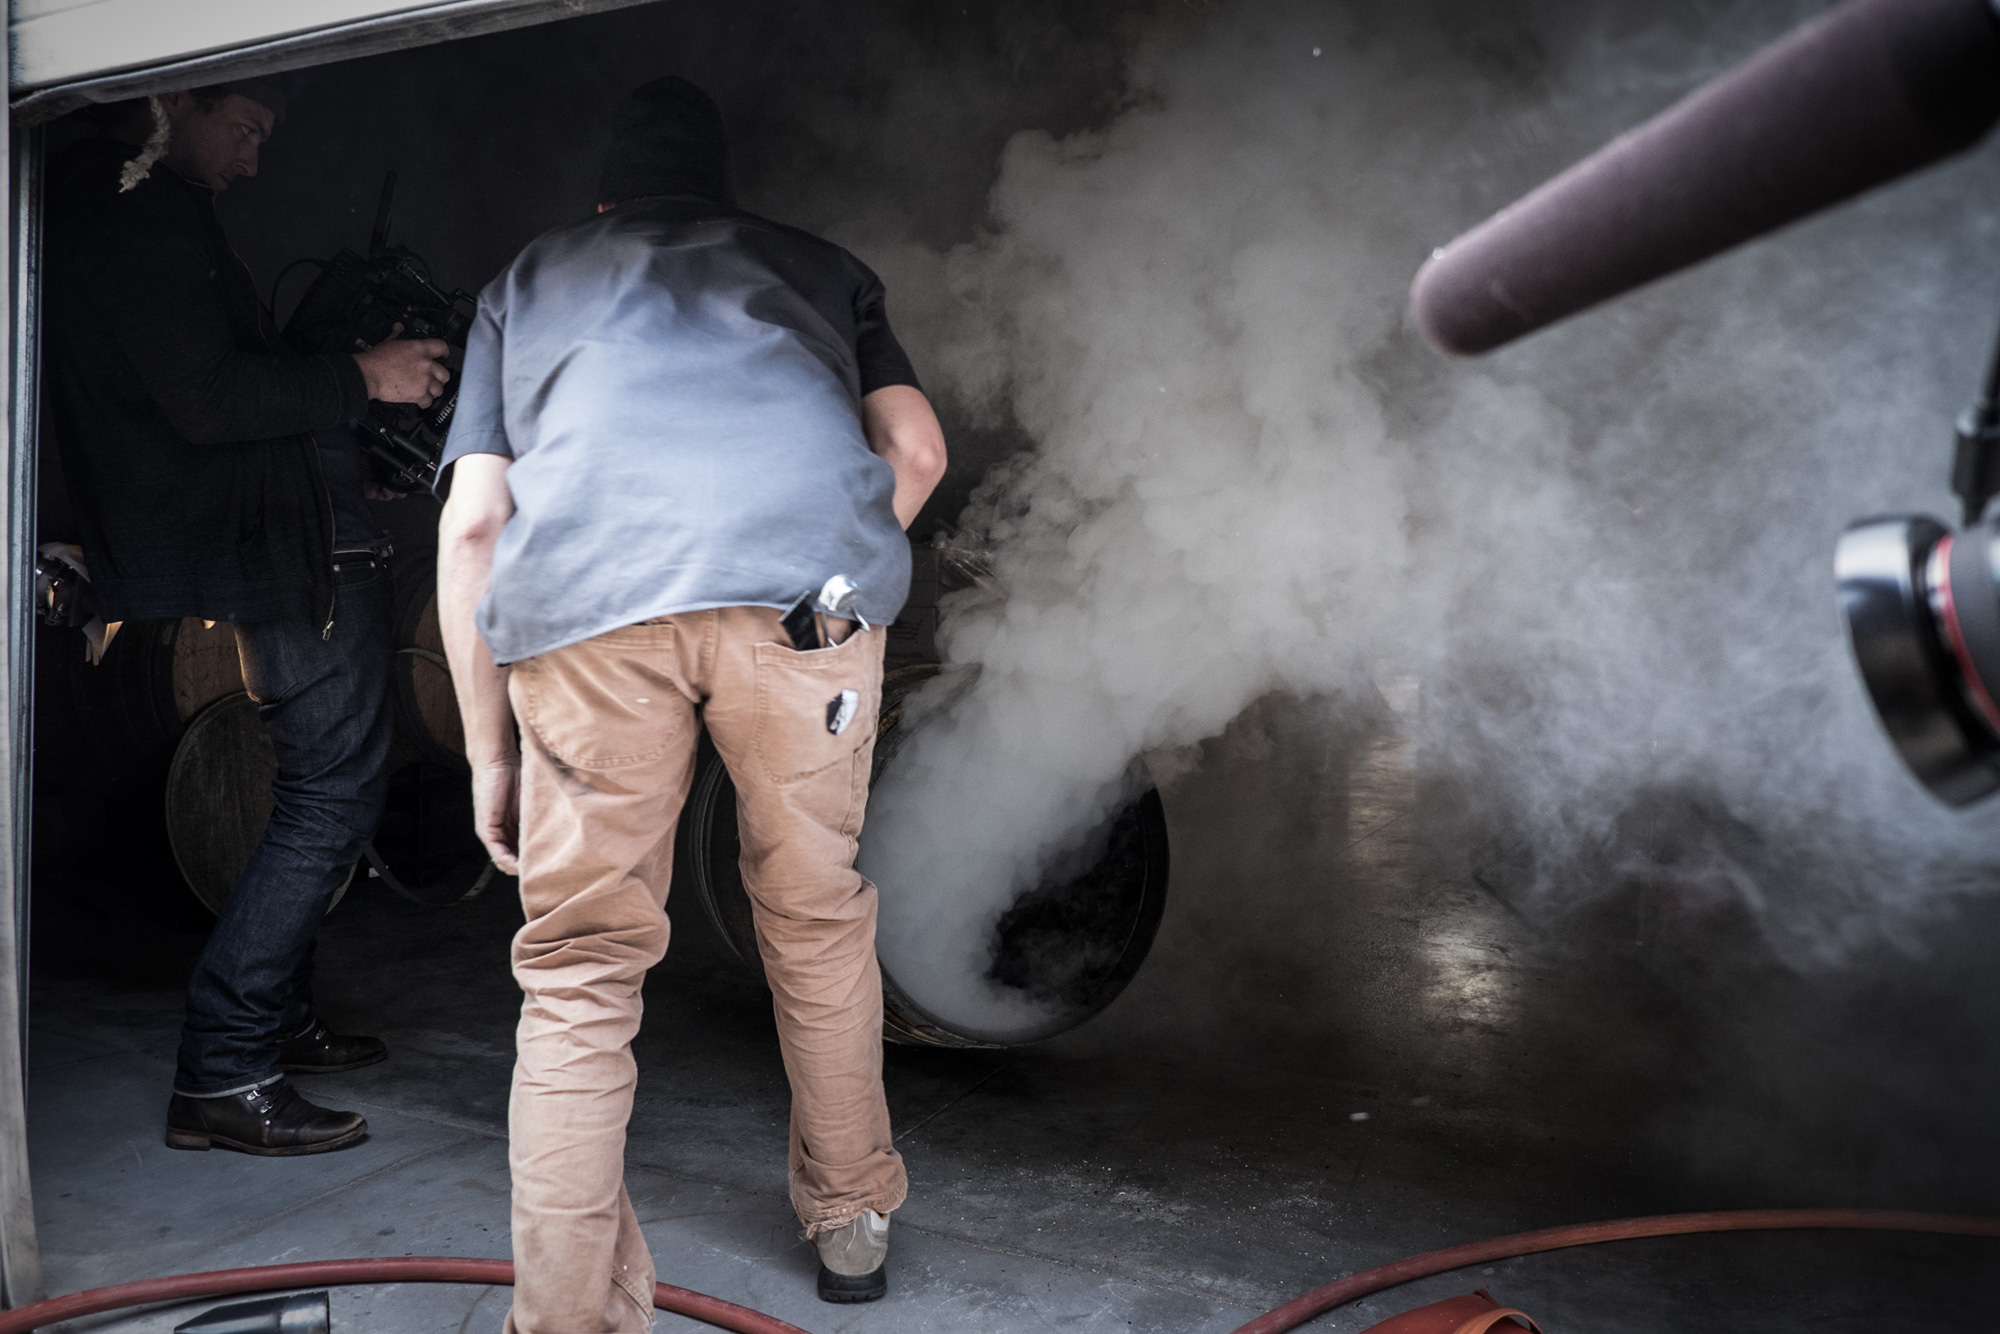 Beehive Distilling Small Batch Craft Gin Salt Lake City Utah 10